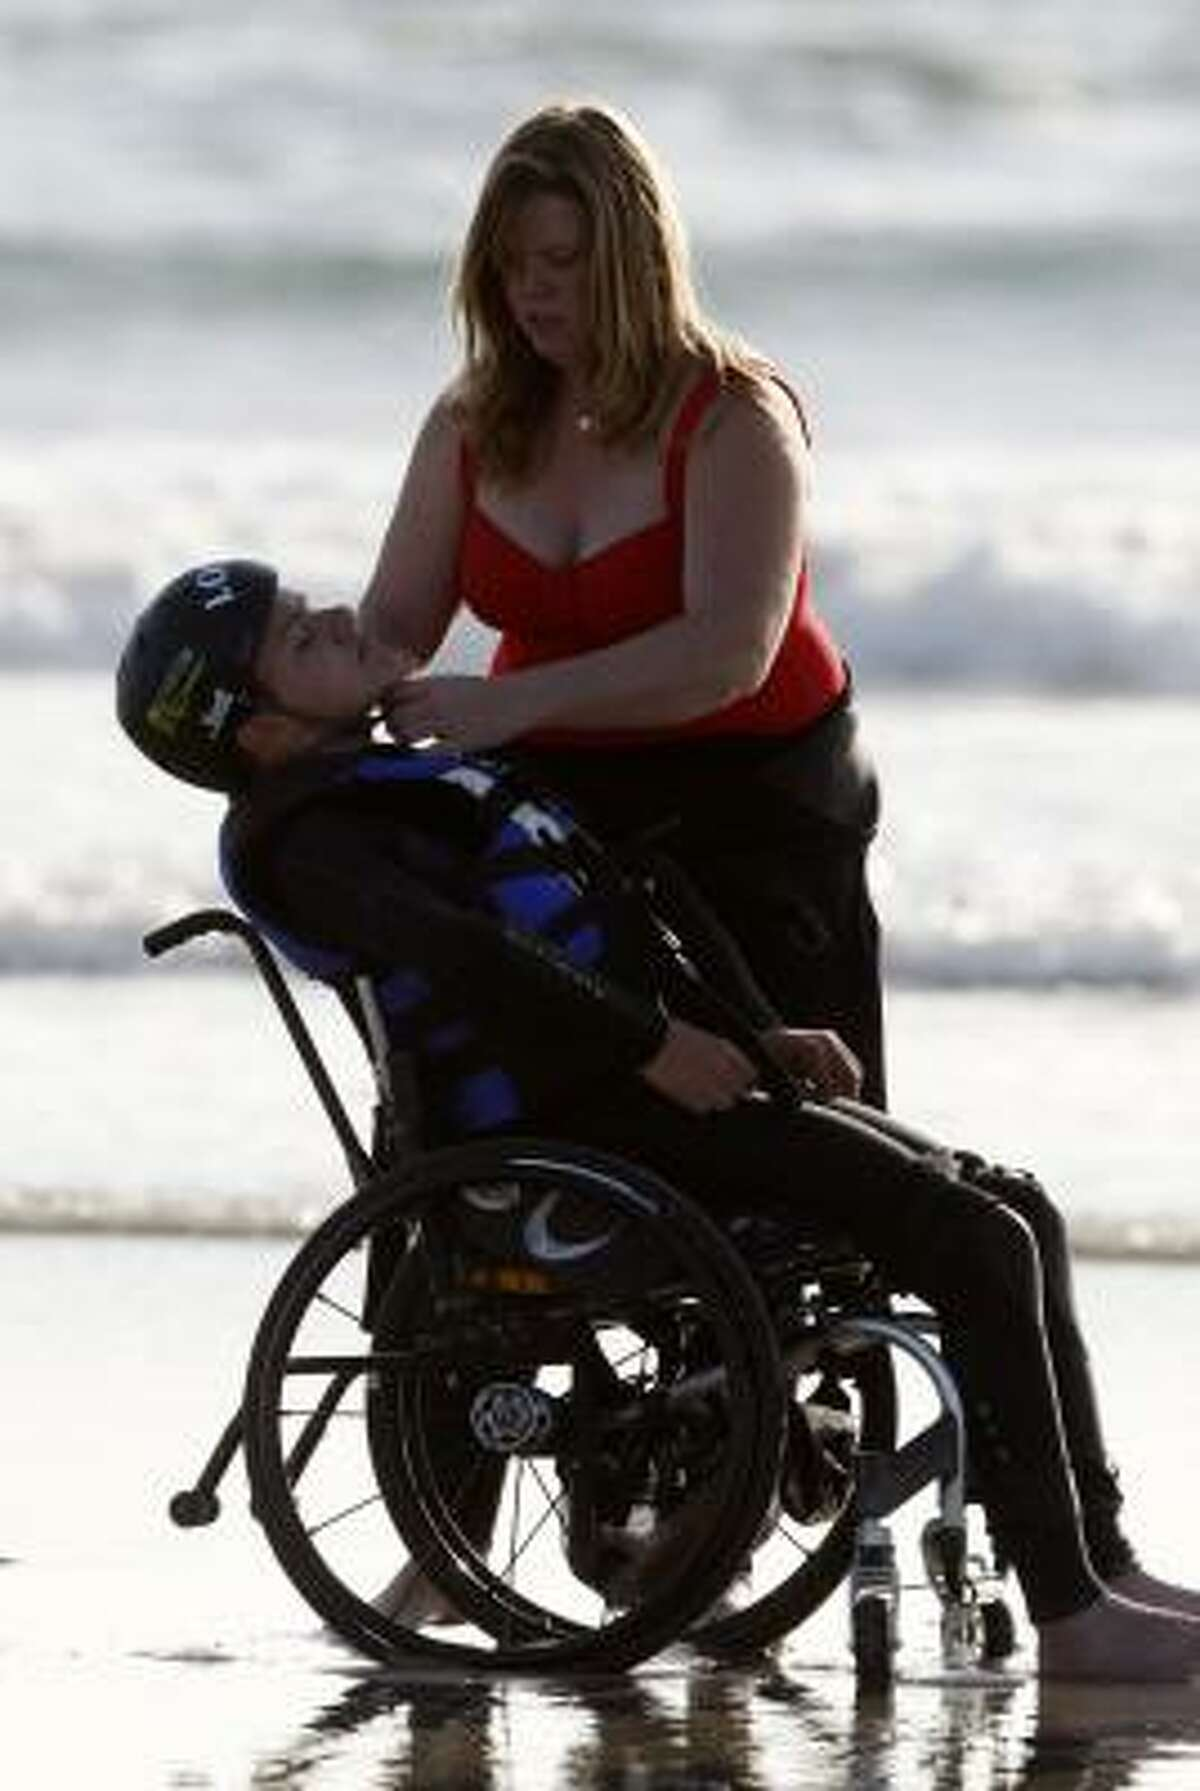 Ivison has his helmet tightened by his mother, Jennifer Kayler, as he prepares for a surfing session.